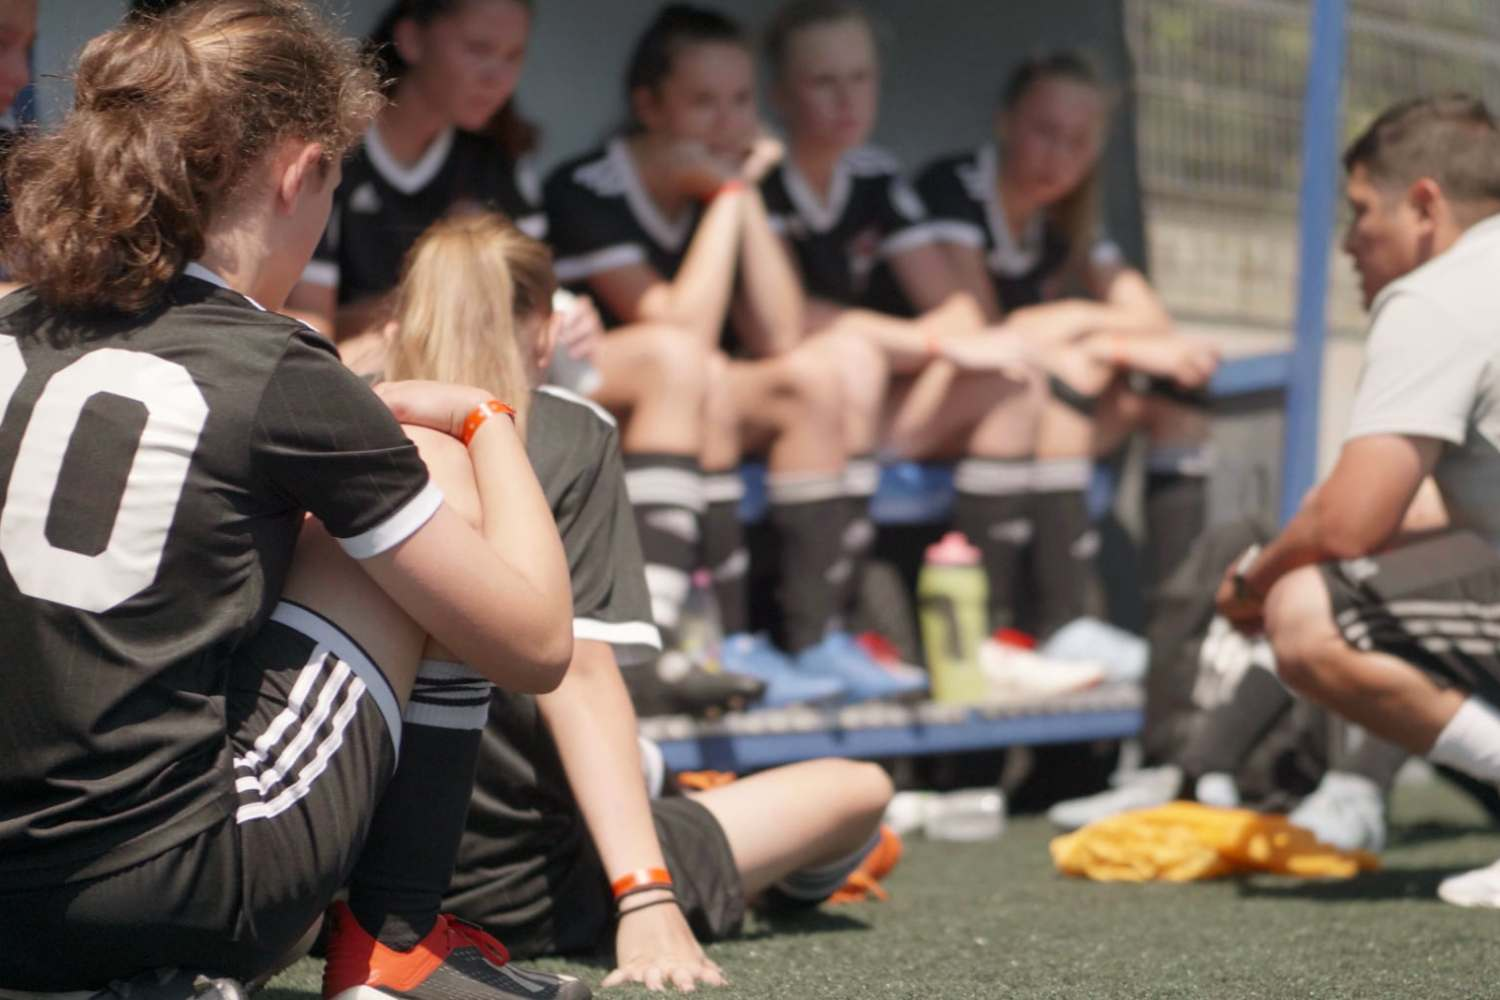 In-the-moment coaching tips